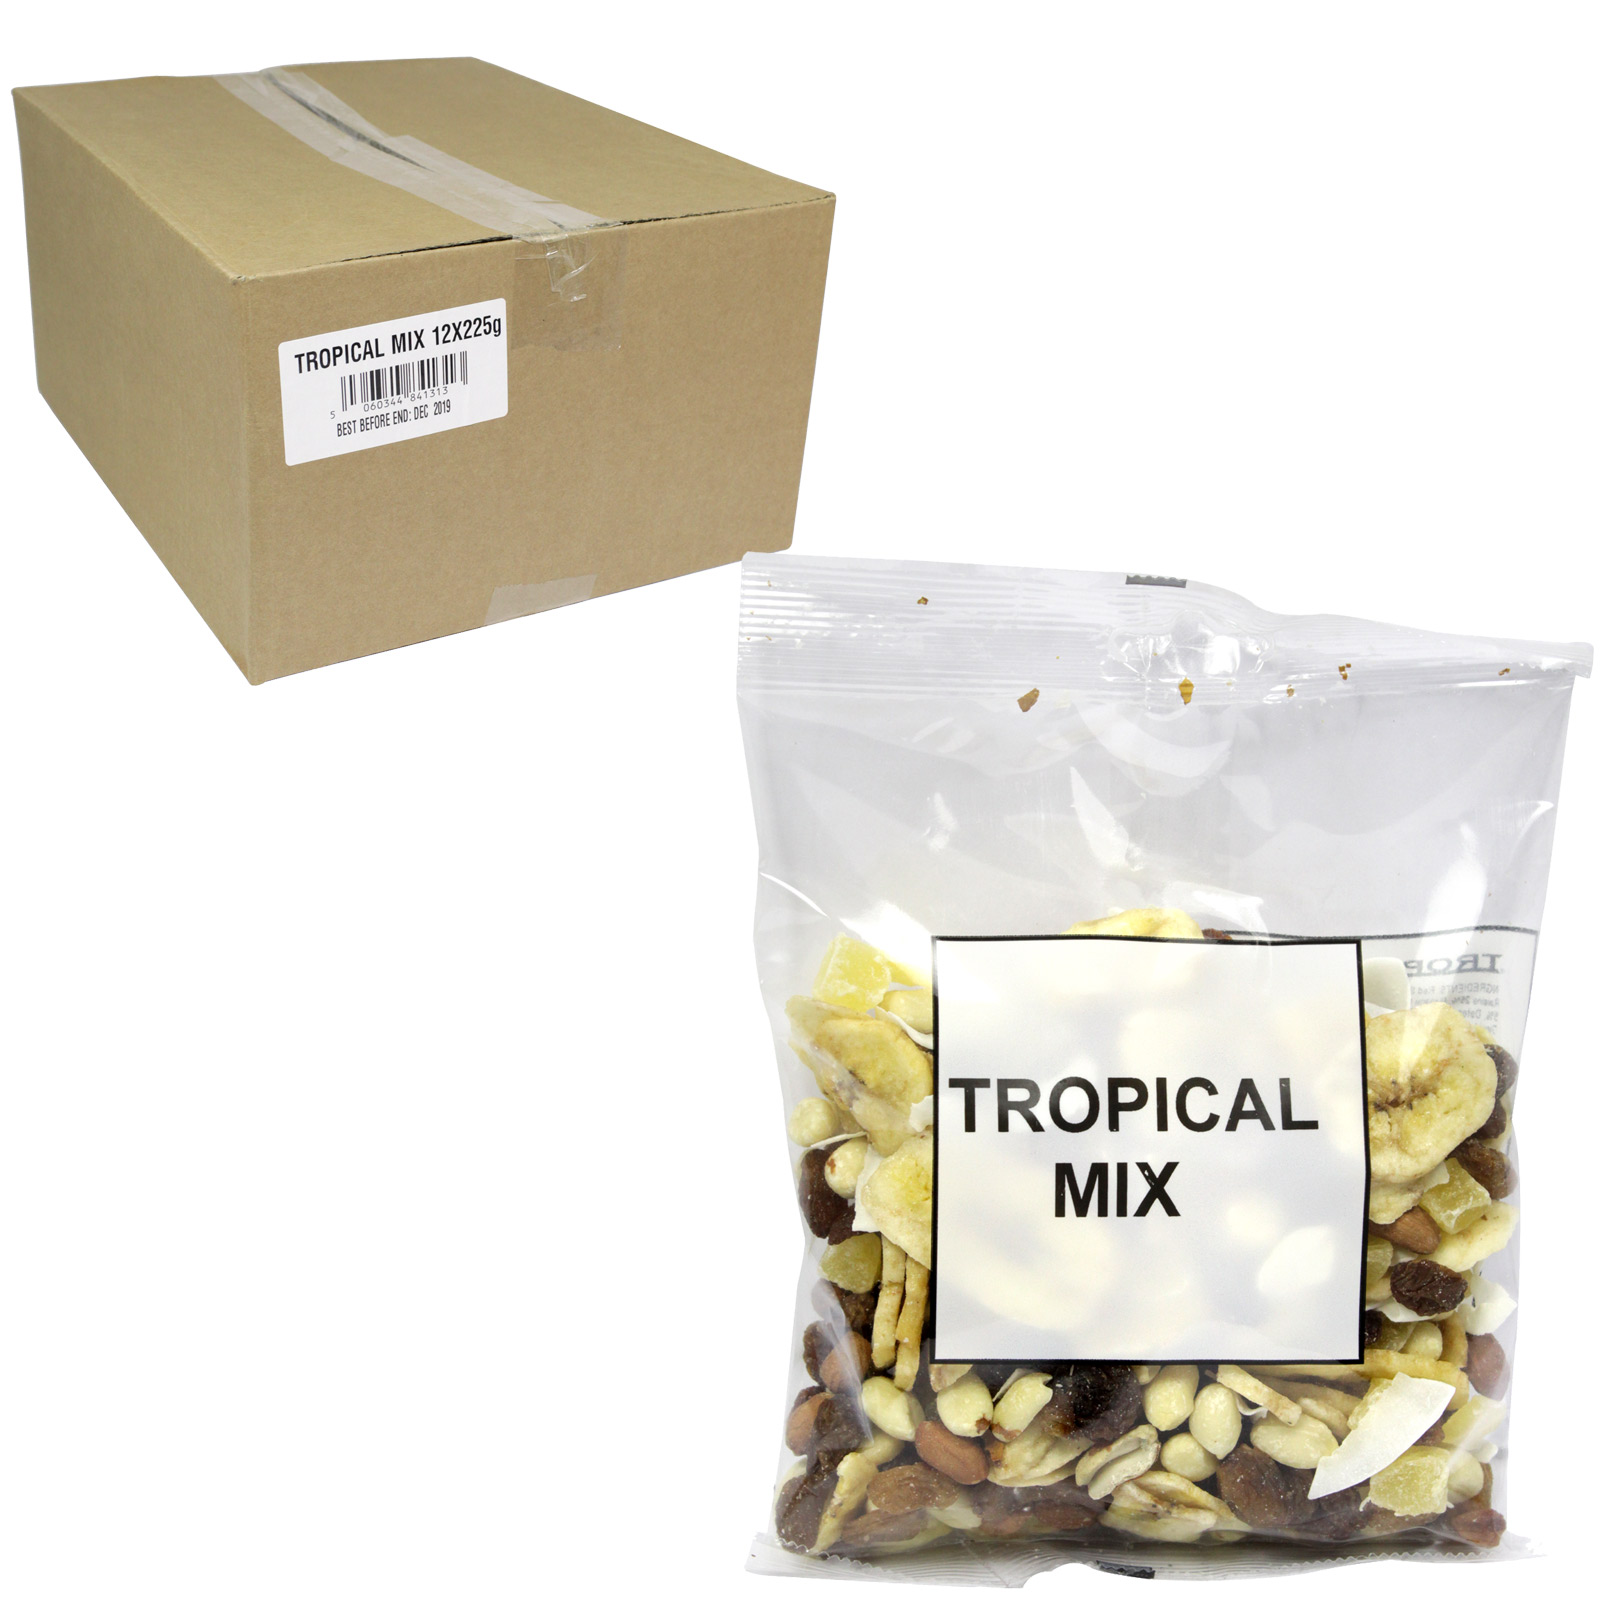 FREEMANS TROPICAL MIX X12